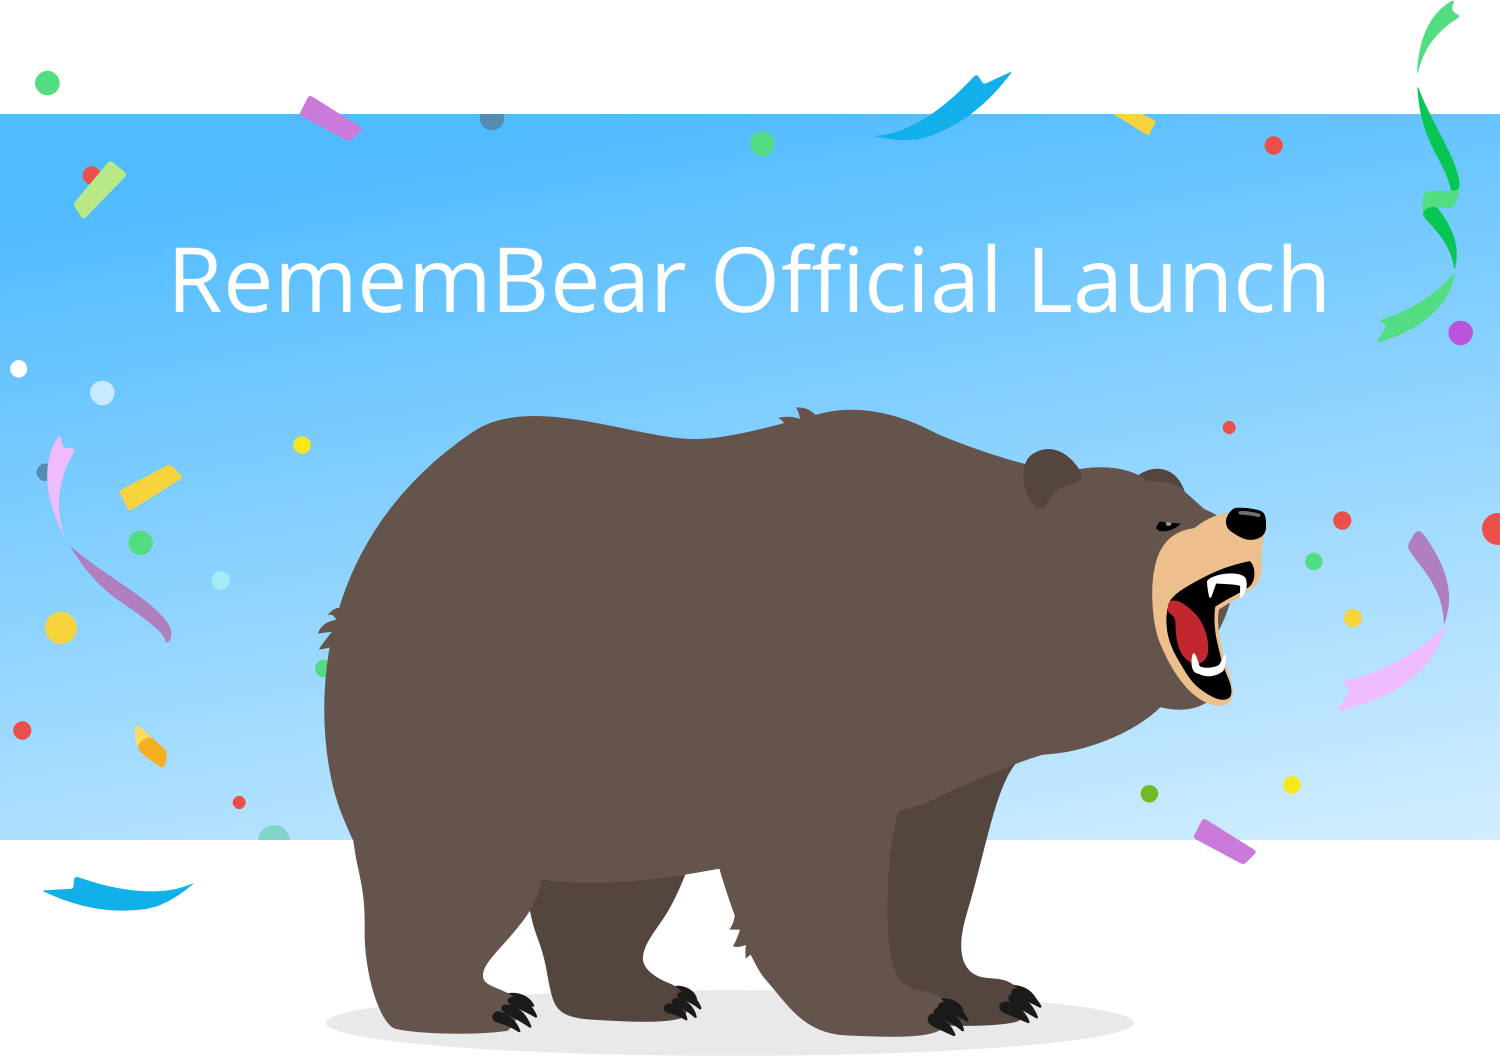 RememBear Official Launch